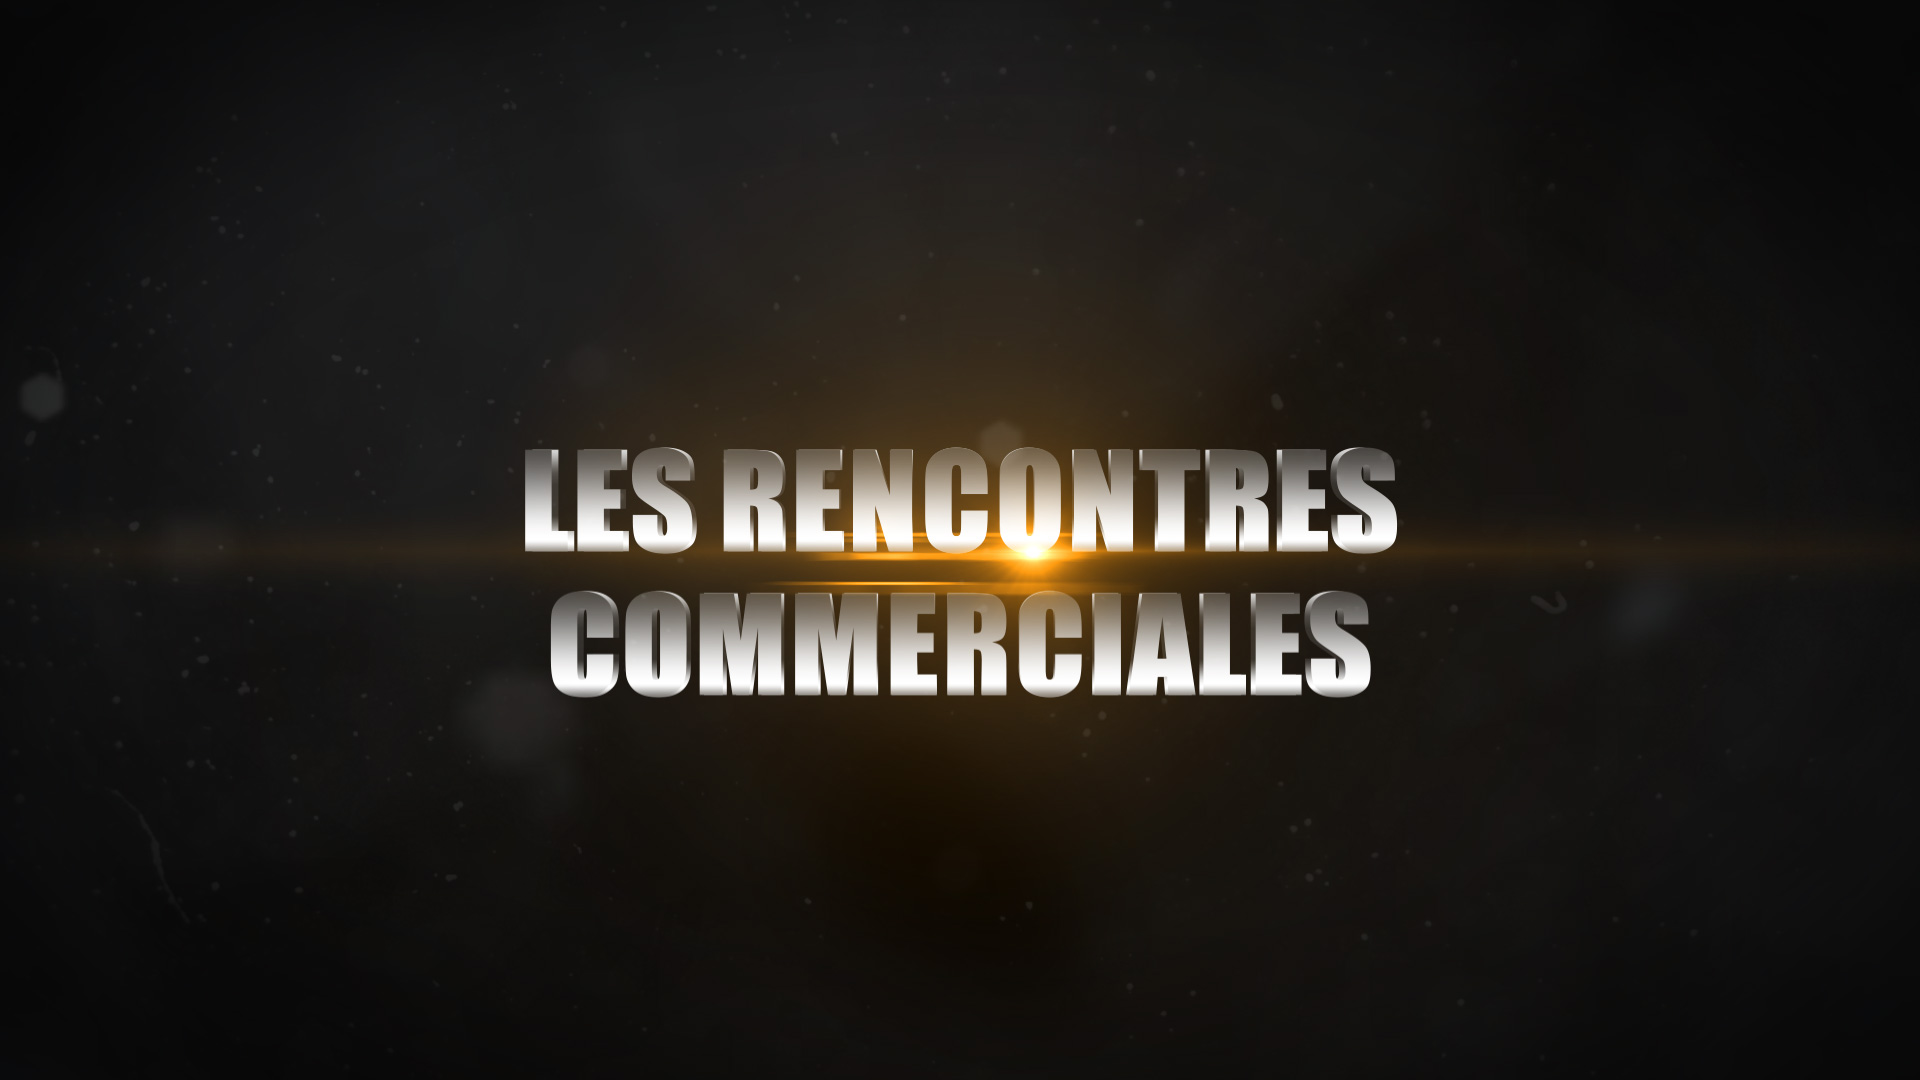 Rencontres Commerciales - 2018 - Marrakech - Teaser